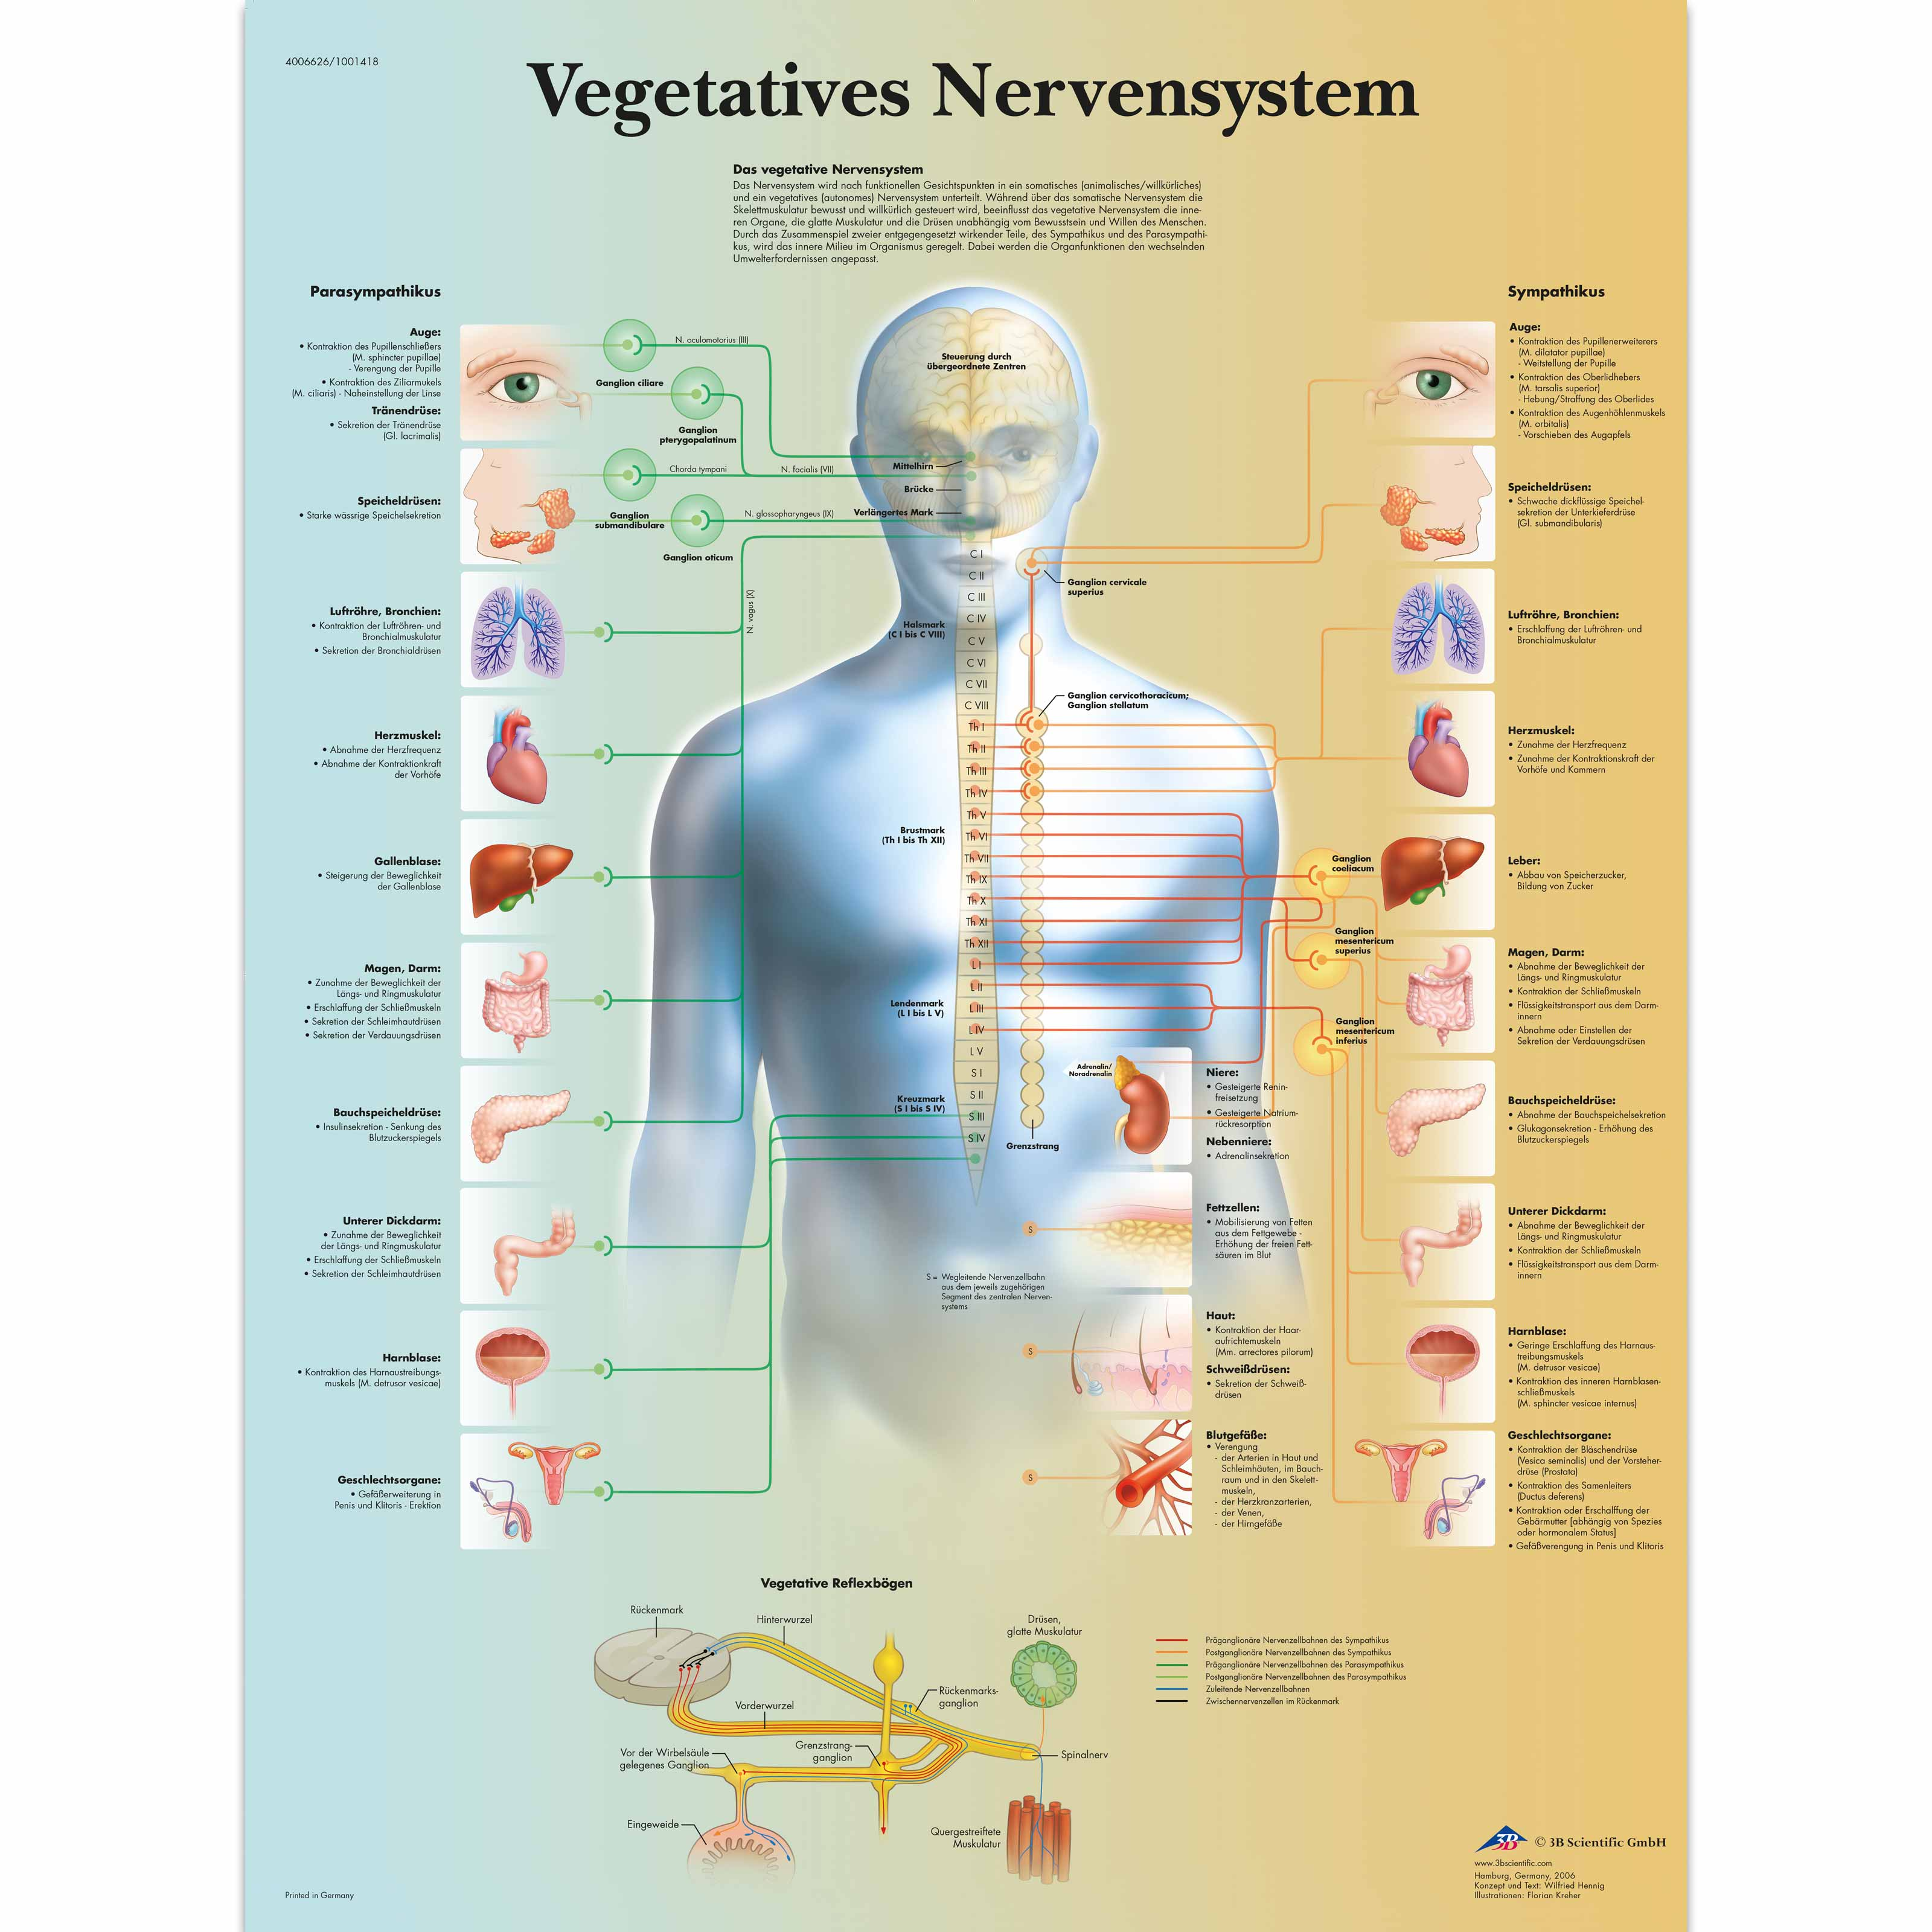 Vegetatives Nervensystem - 4006626 - VR0610uu - Brain and Nervous ...